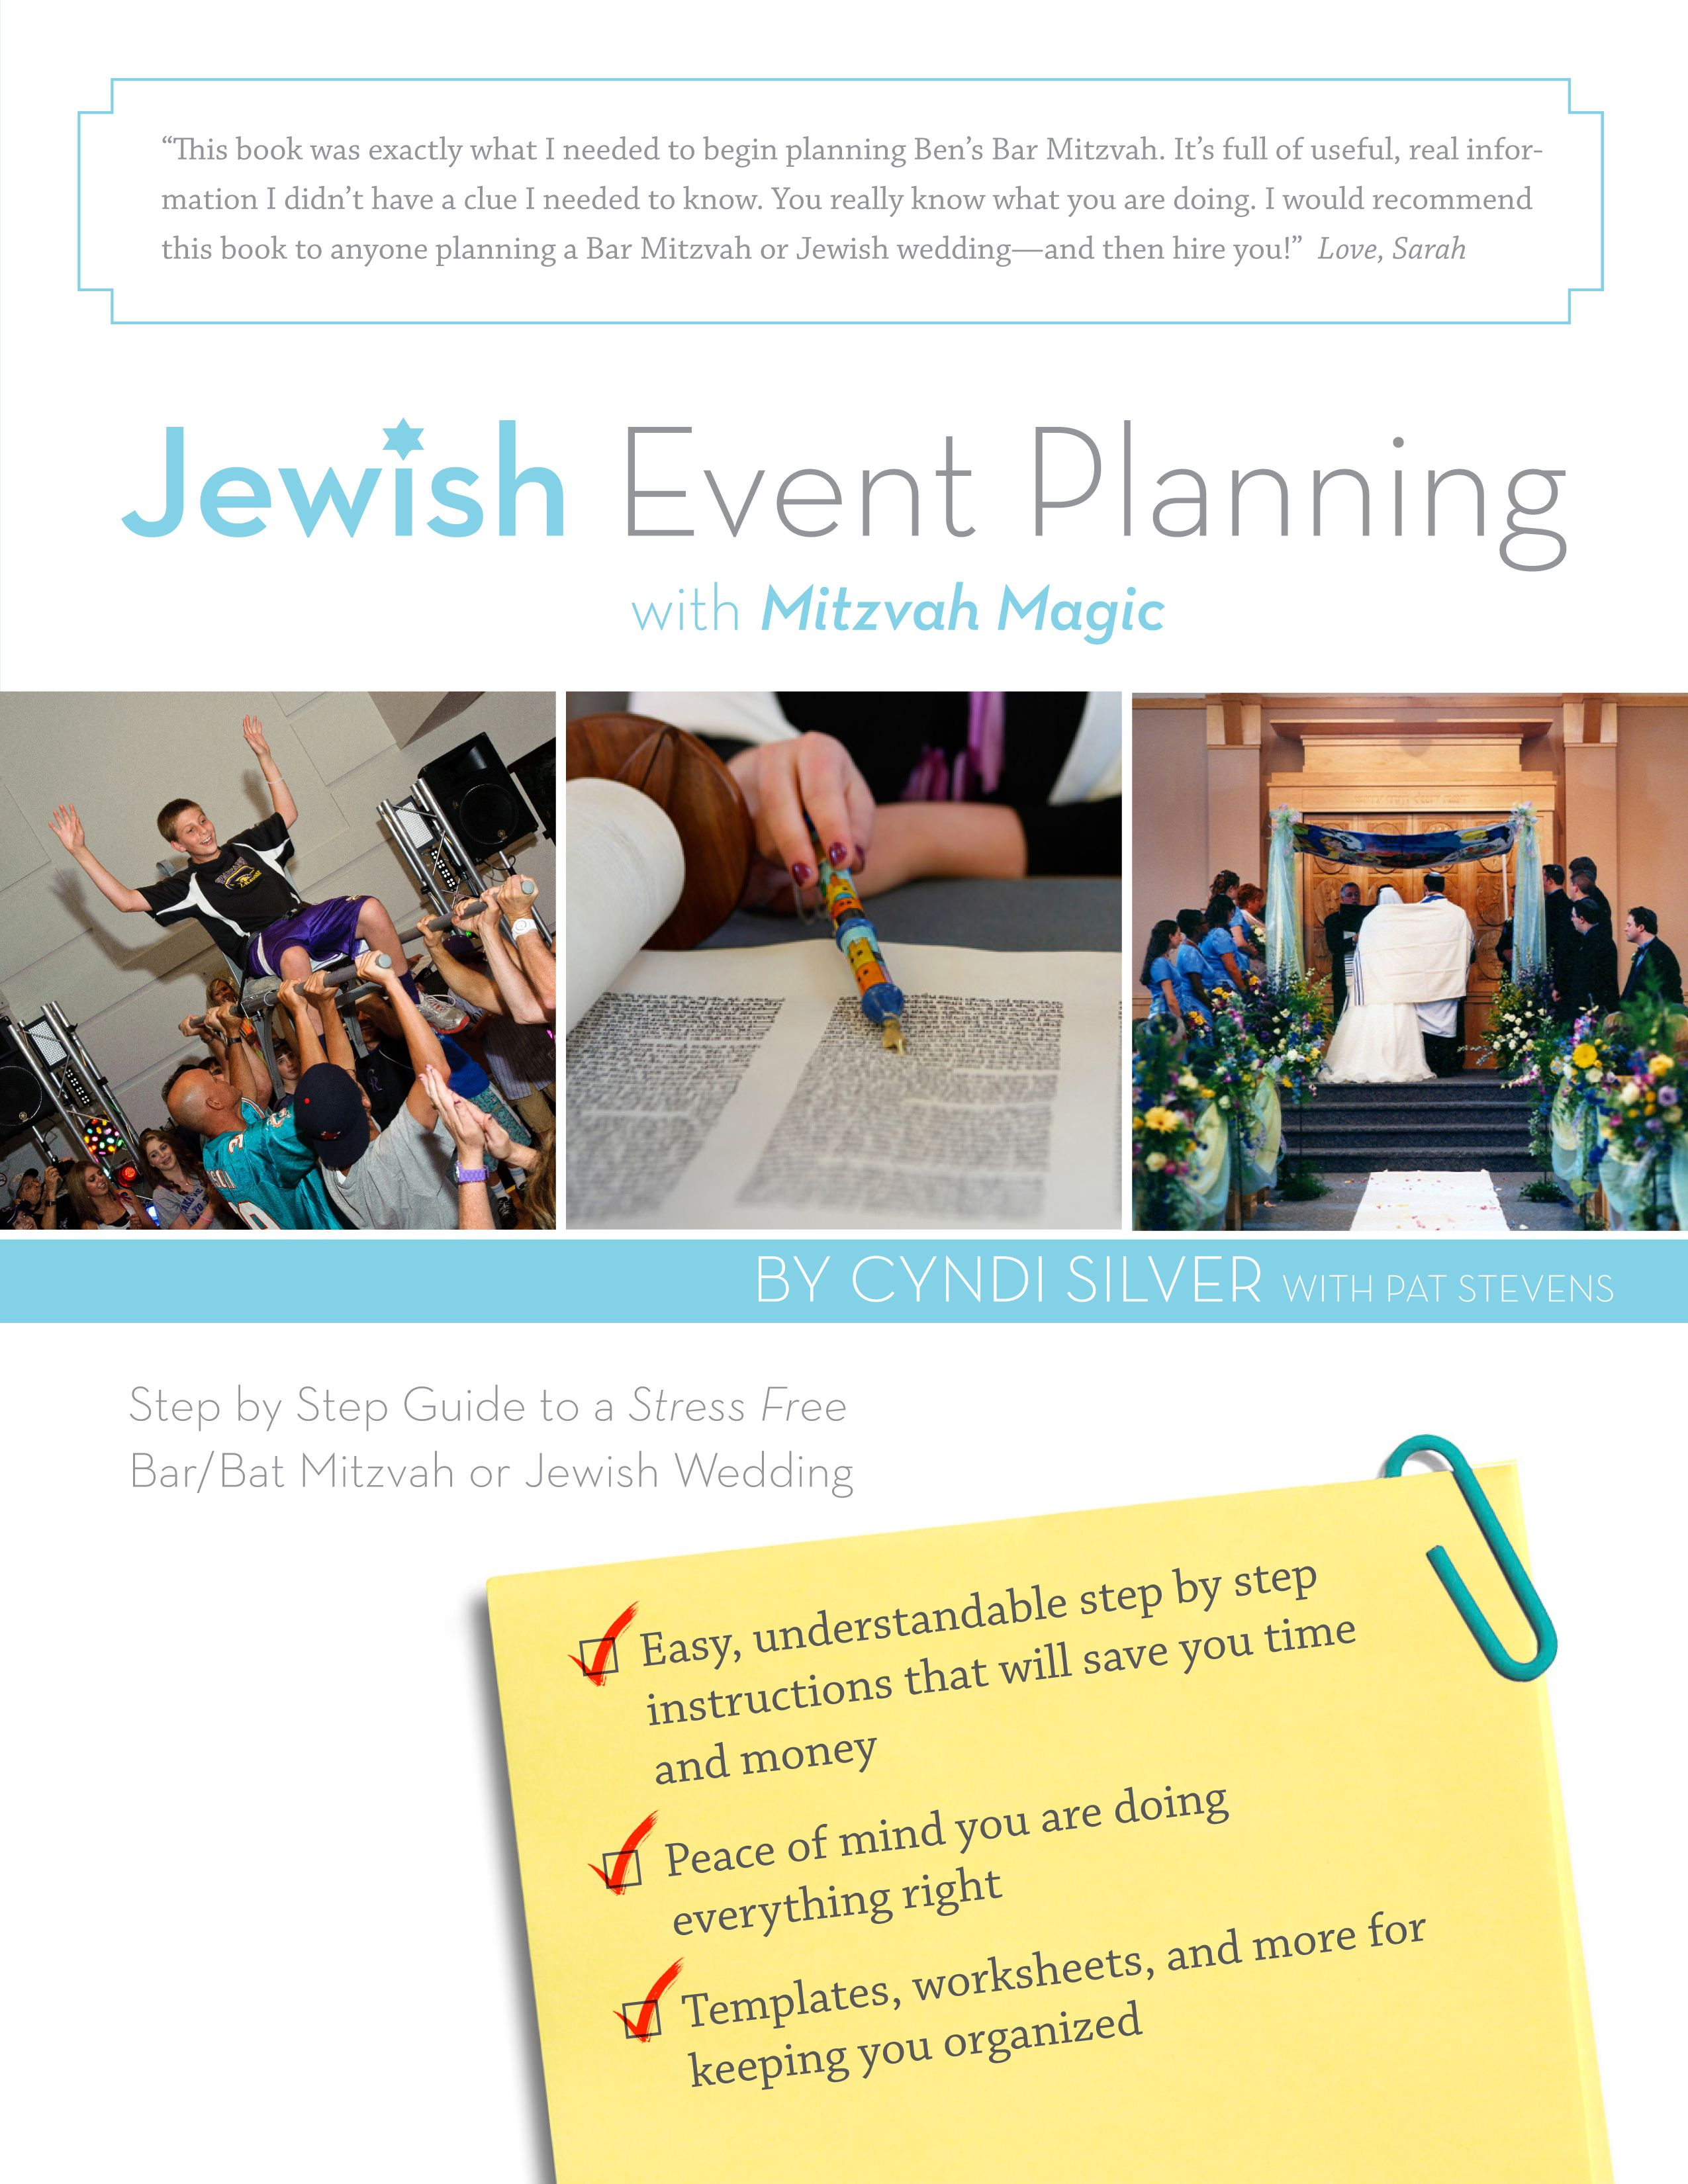 Step By Step Guide To A Stress Free Bar Bat Mitzvah Or